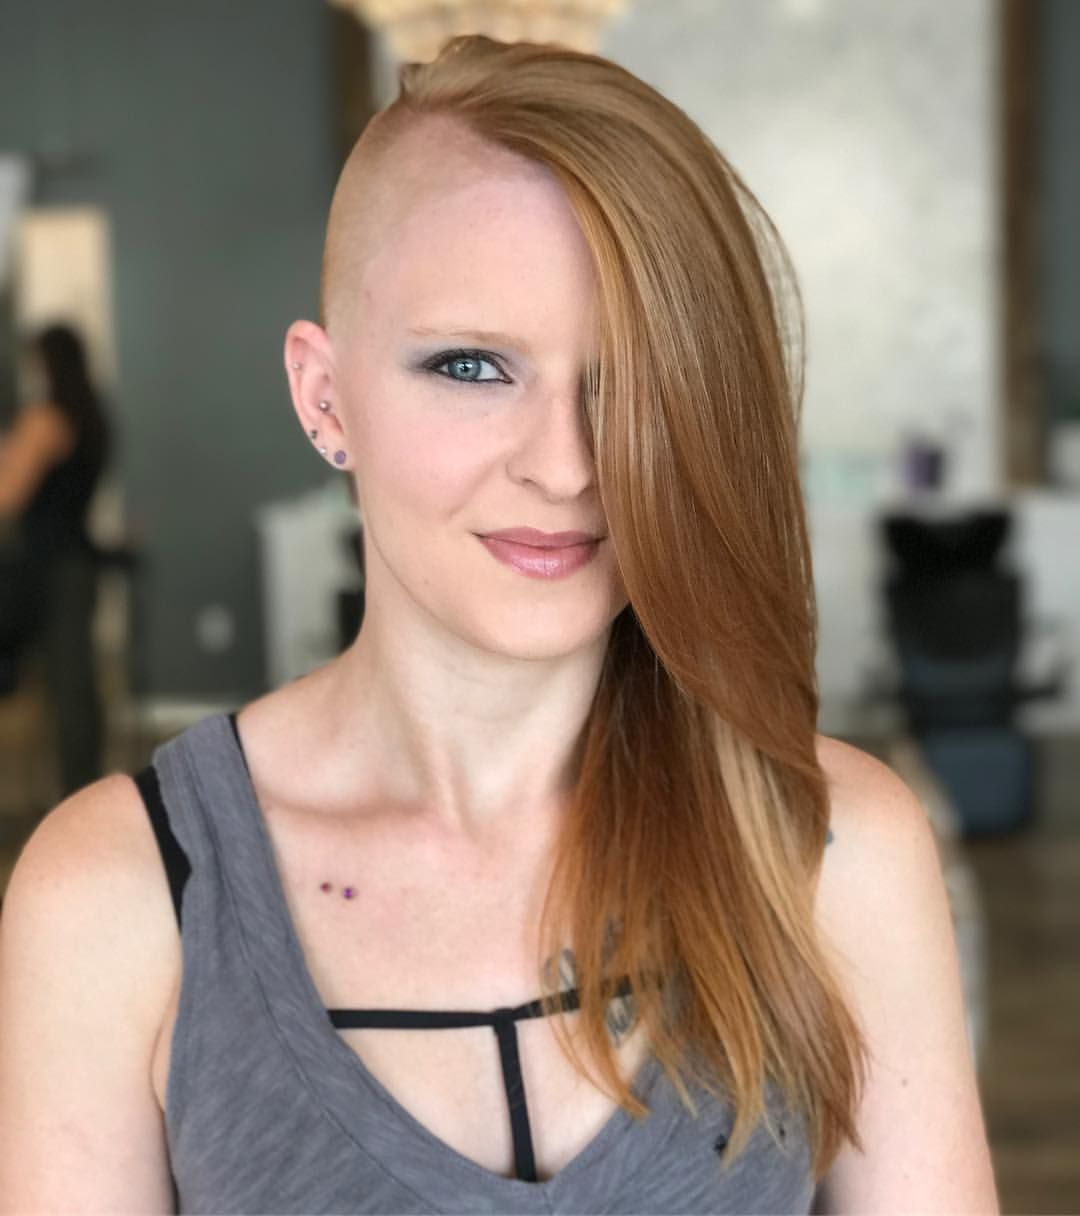 strawberry blond hair, one side shaved | new short hair cut